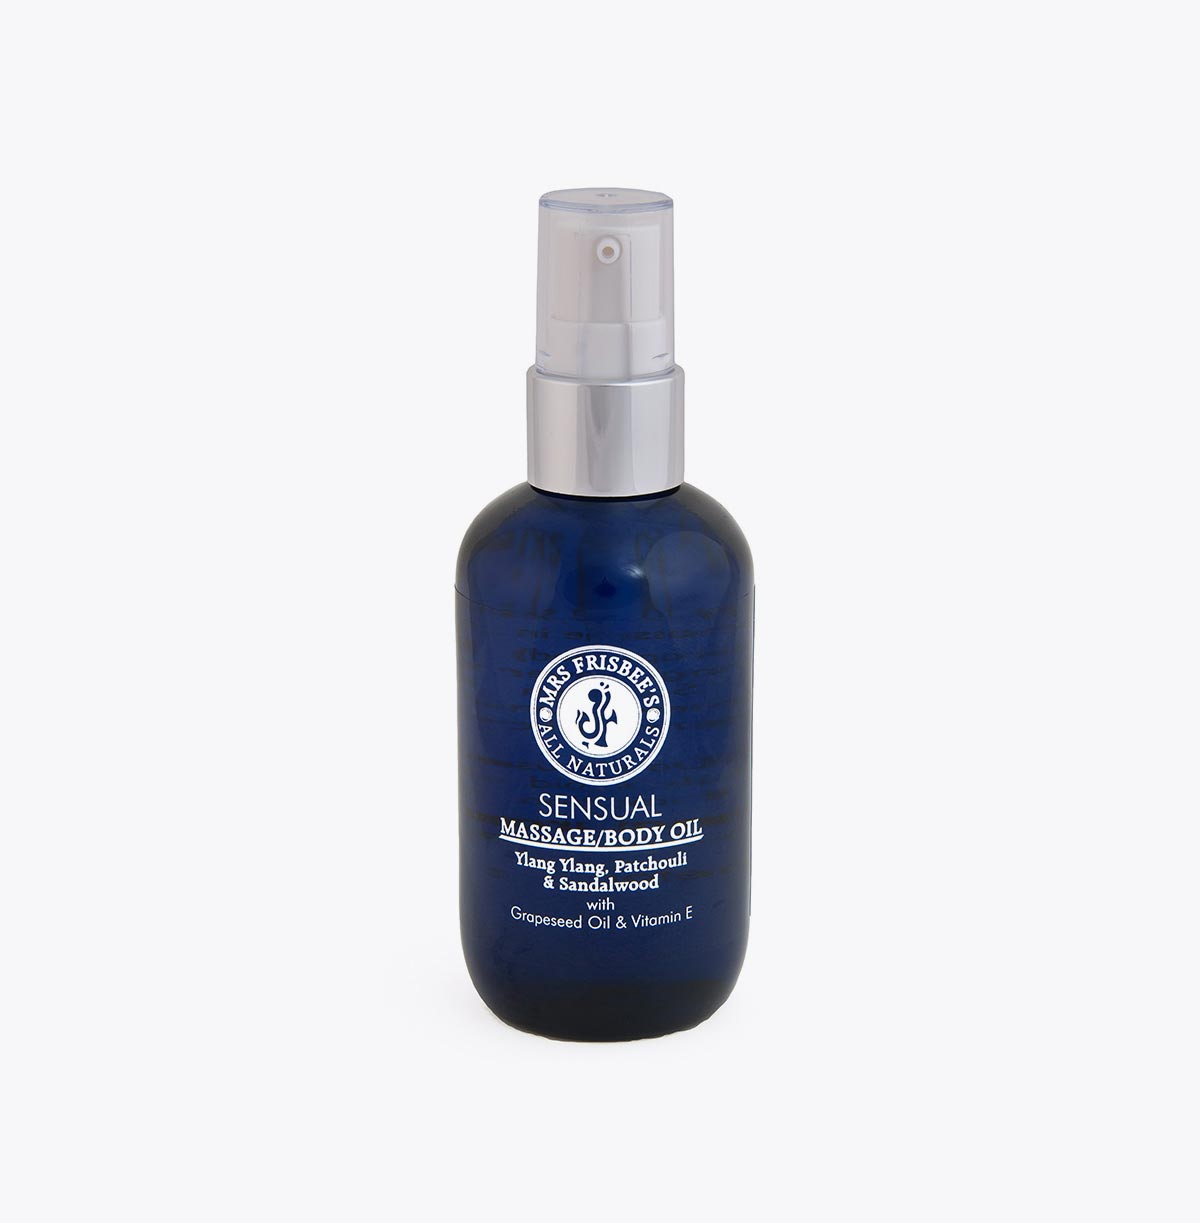 Sensual Massage Oil with Ylang Ylang, Patchouli and Sandalwood Pure Essential Oils.